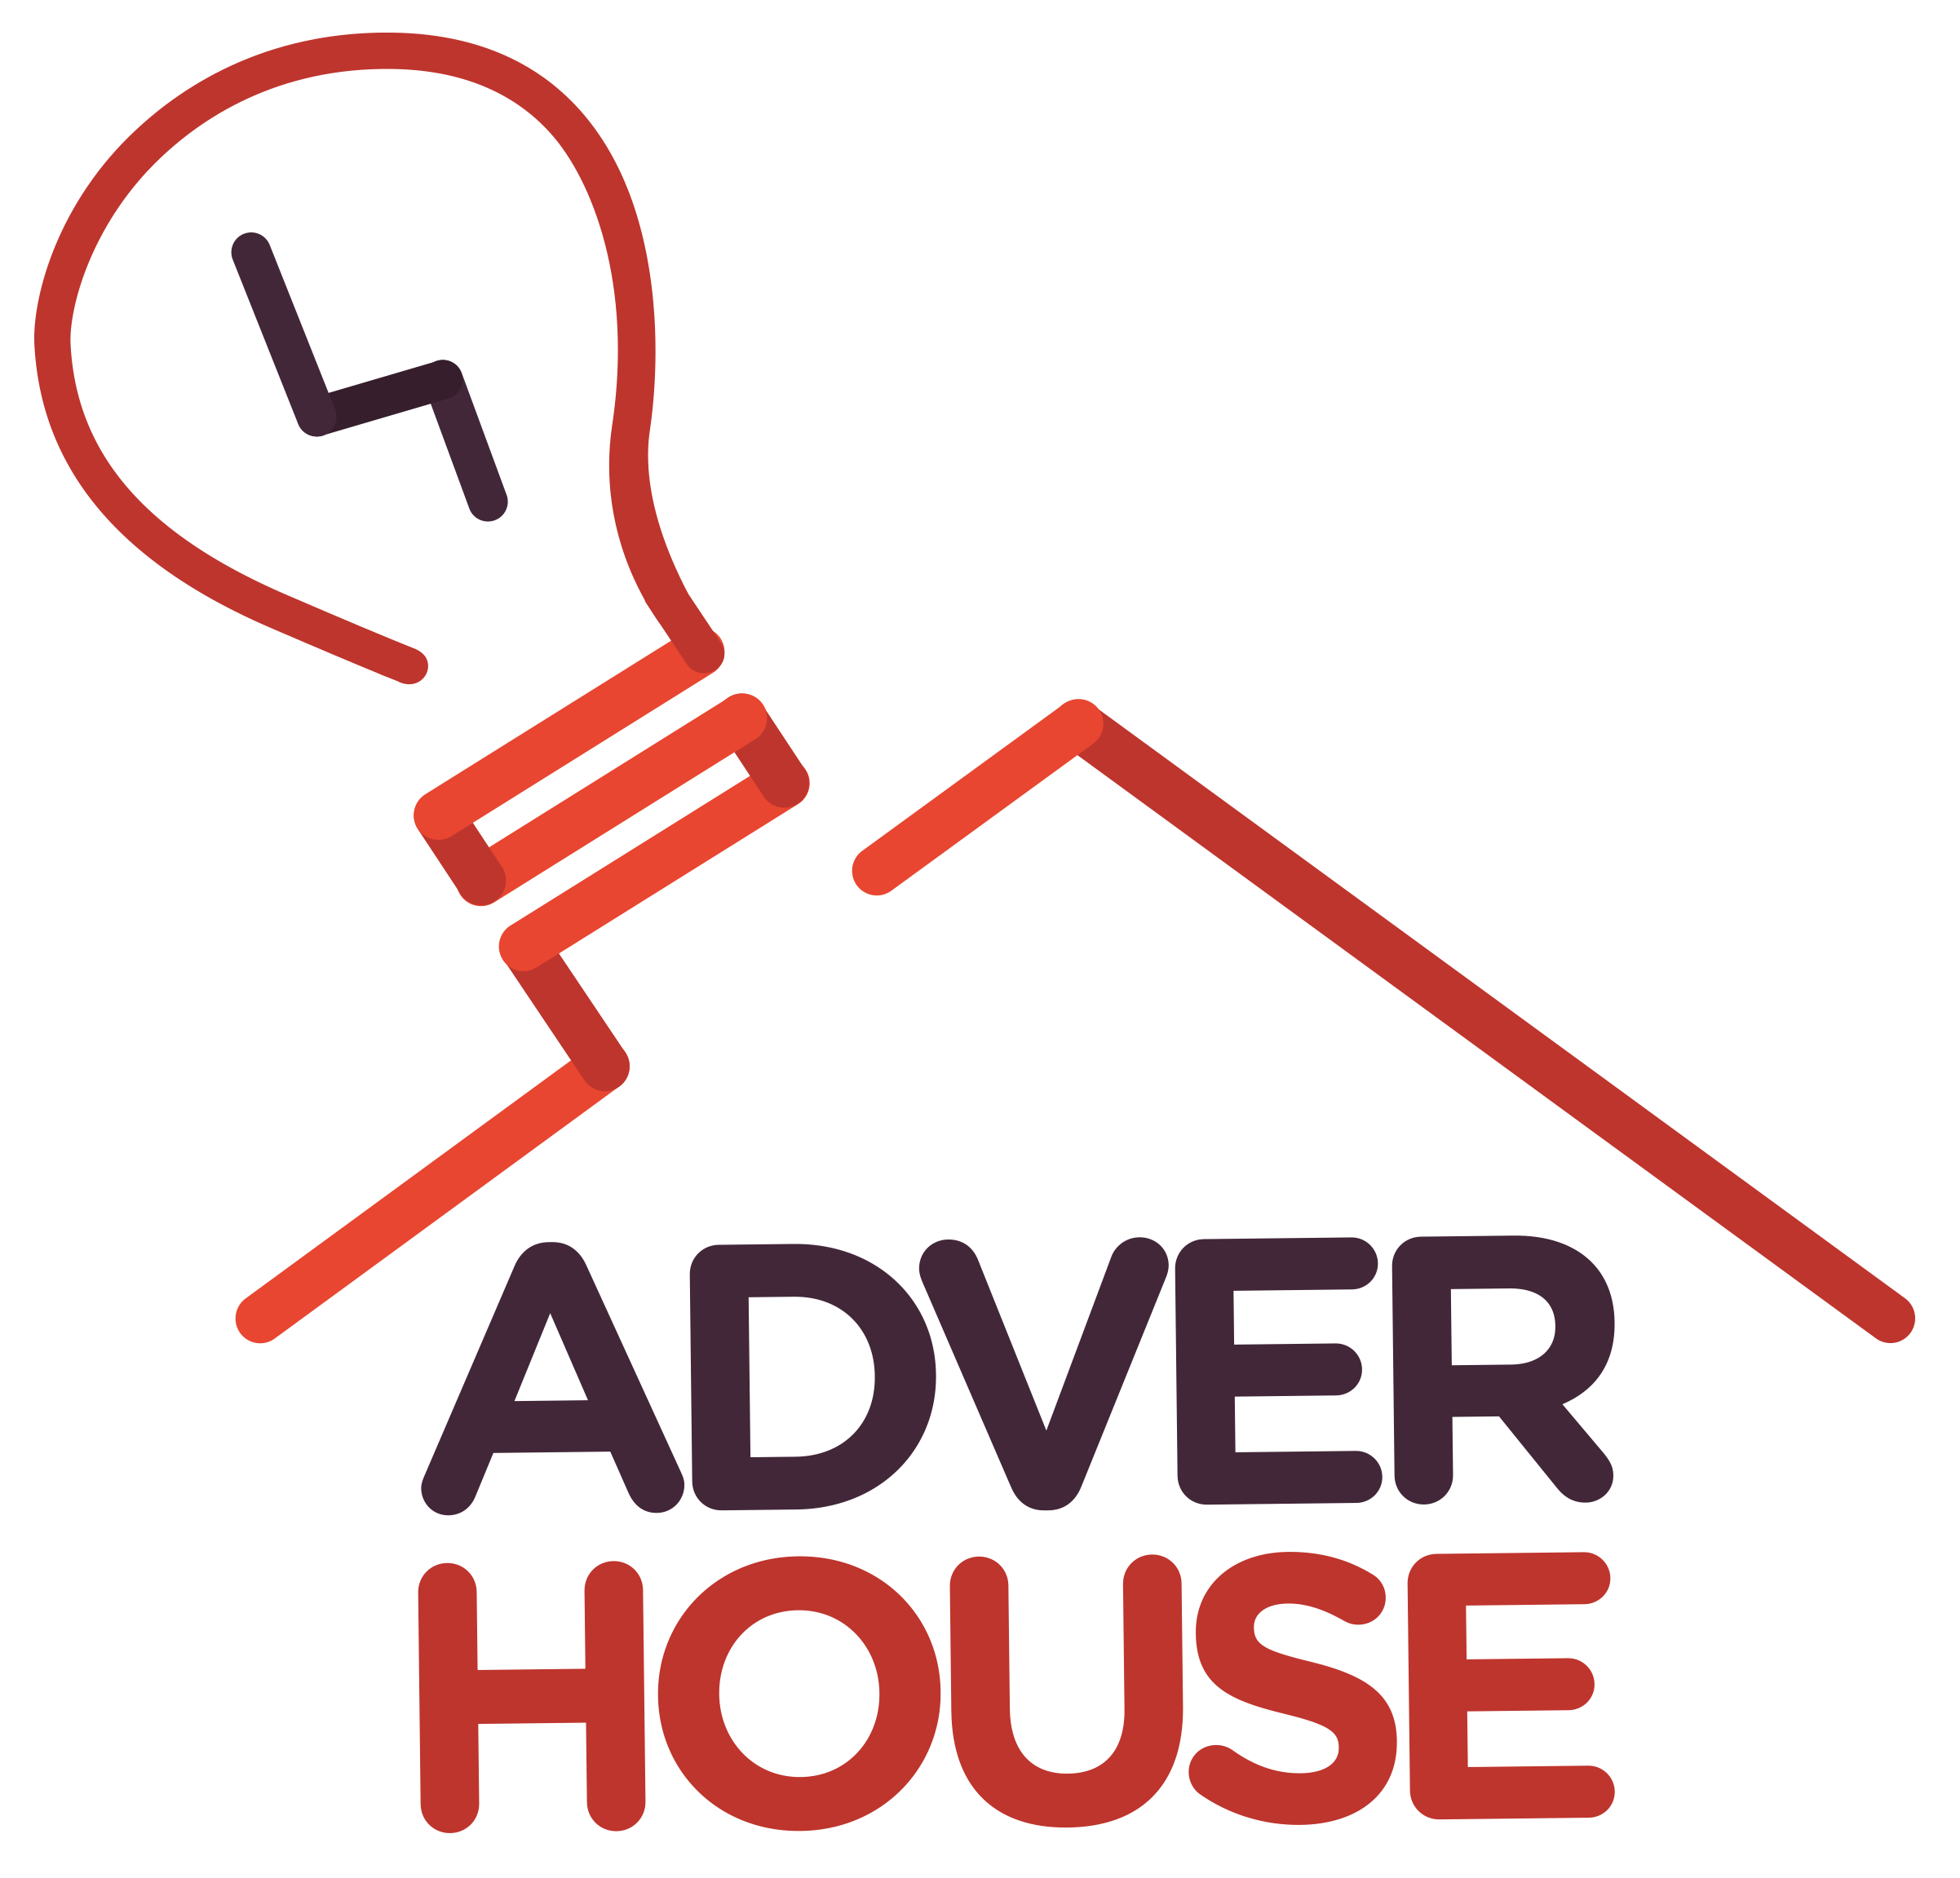 Adverhouse